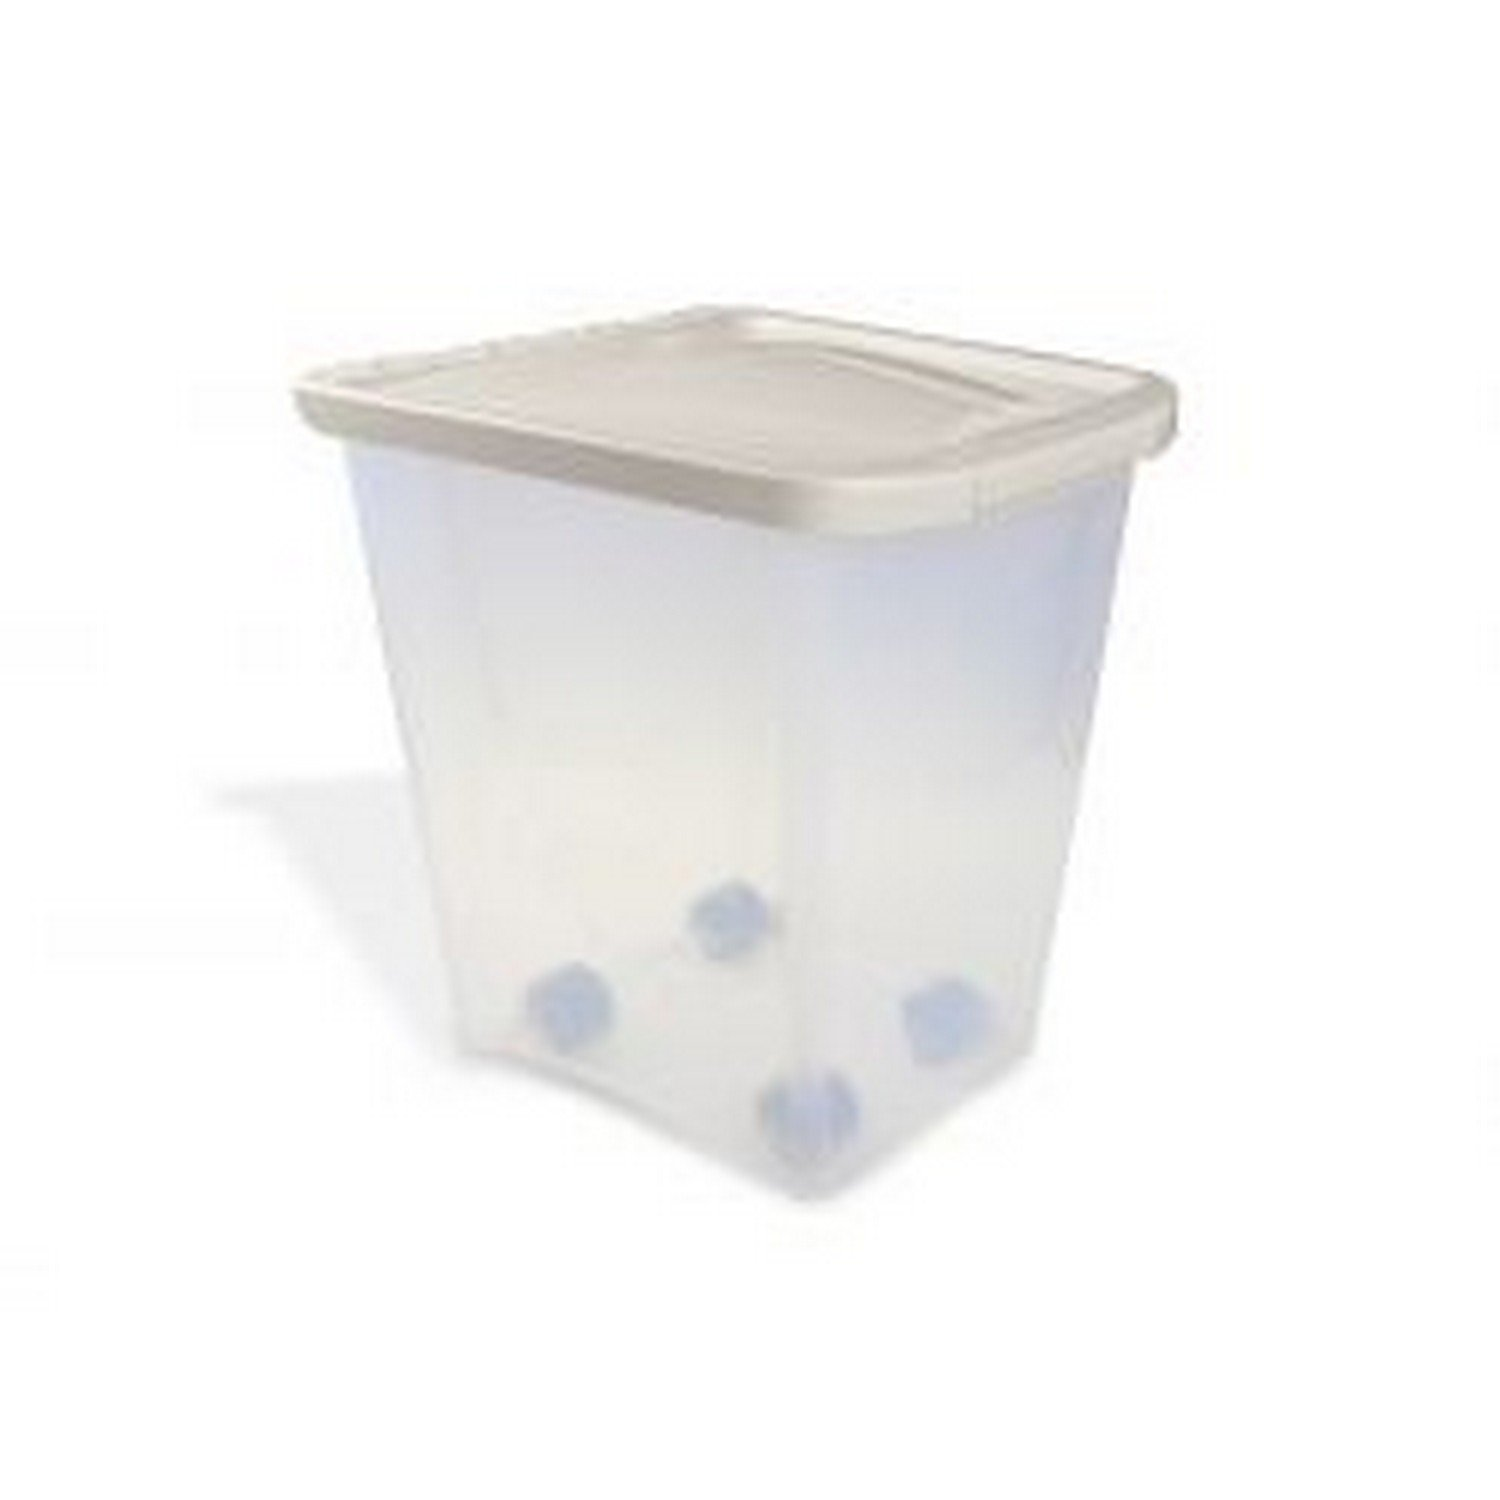 KENNELPAK Van Ness Pet Food Container (25 Lbs) (Clear)